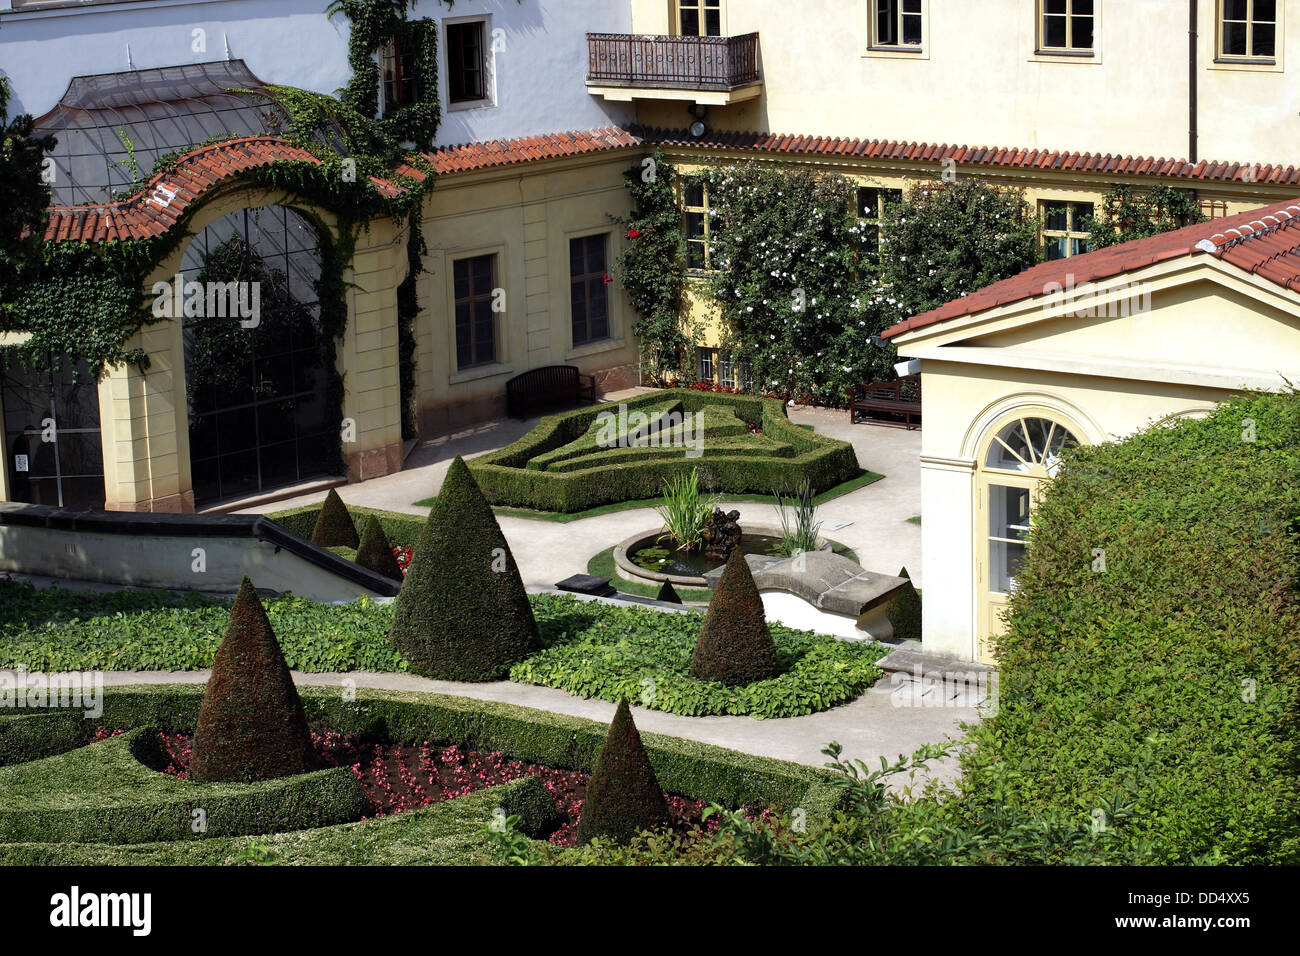 Vrtbovska garden is a baroque garden situated on the slopes of the Petrin Hill in Prague, Europe -  and one of the - Stock Image